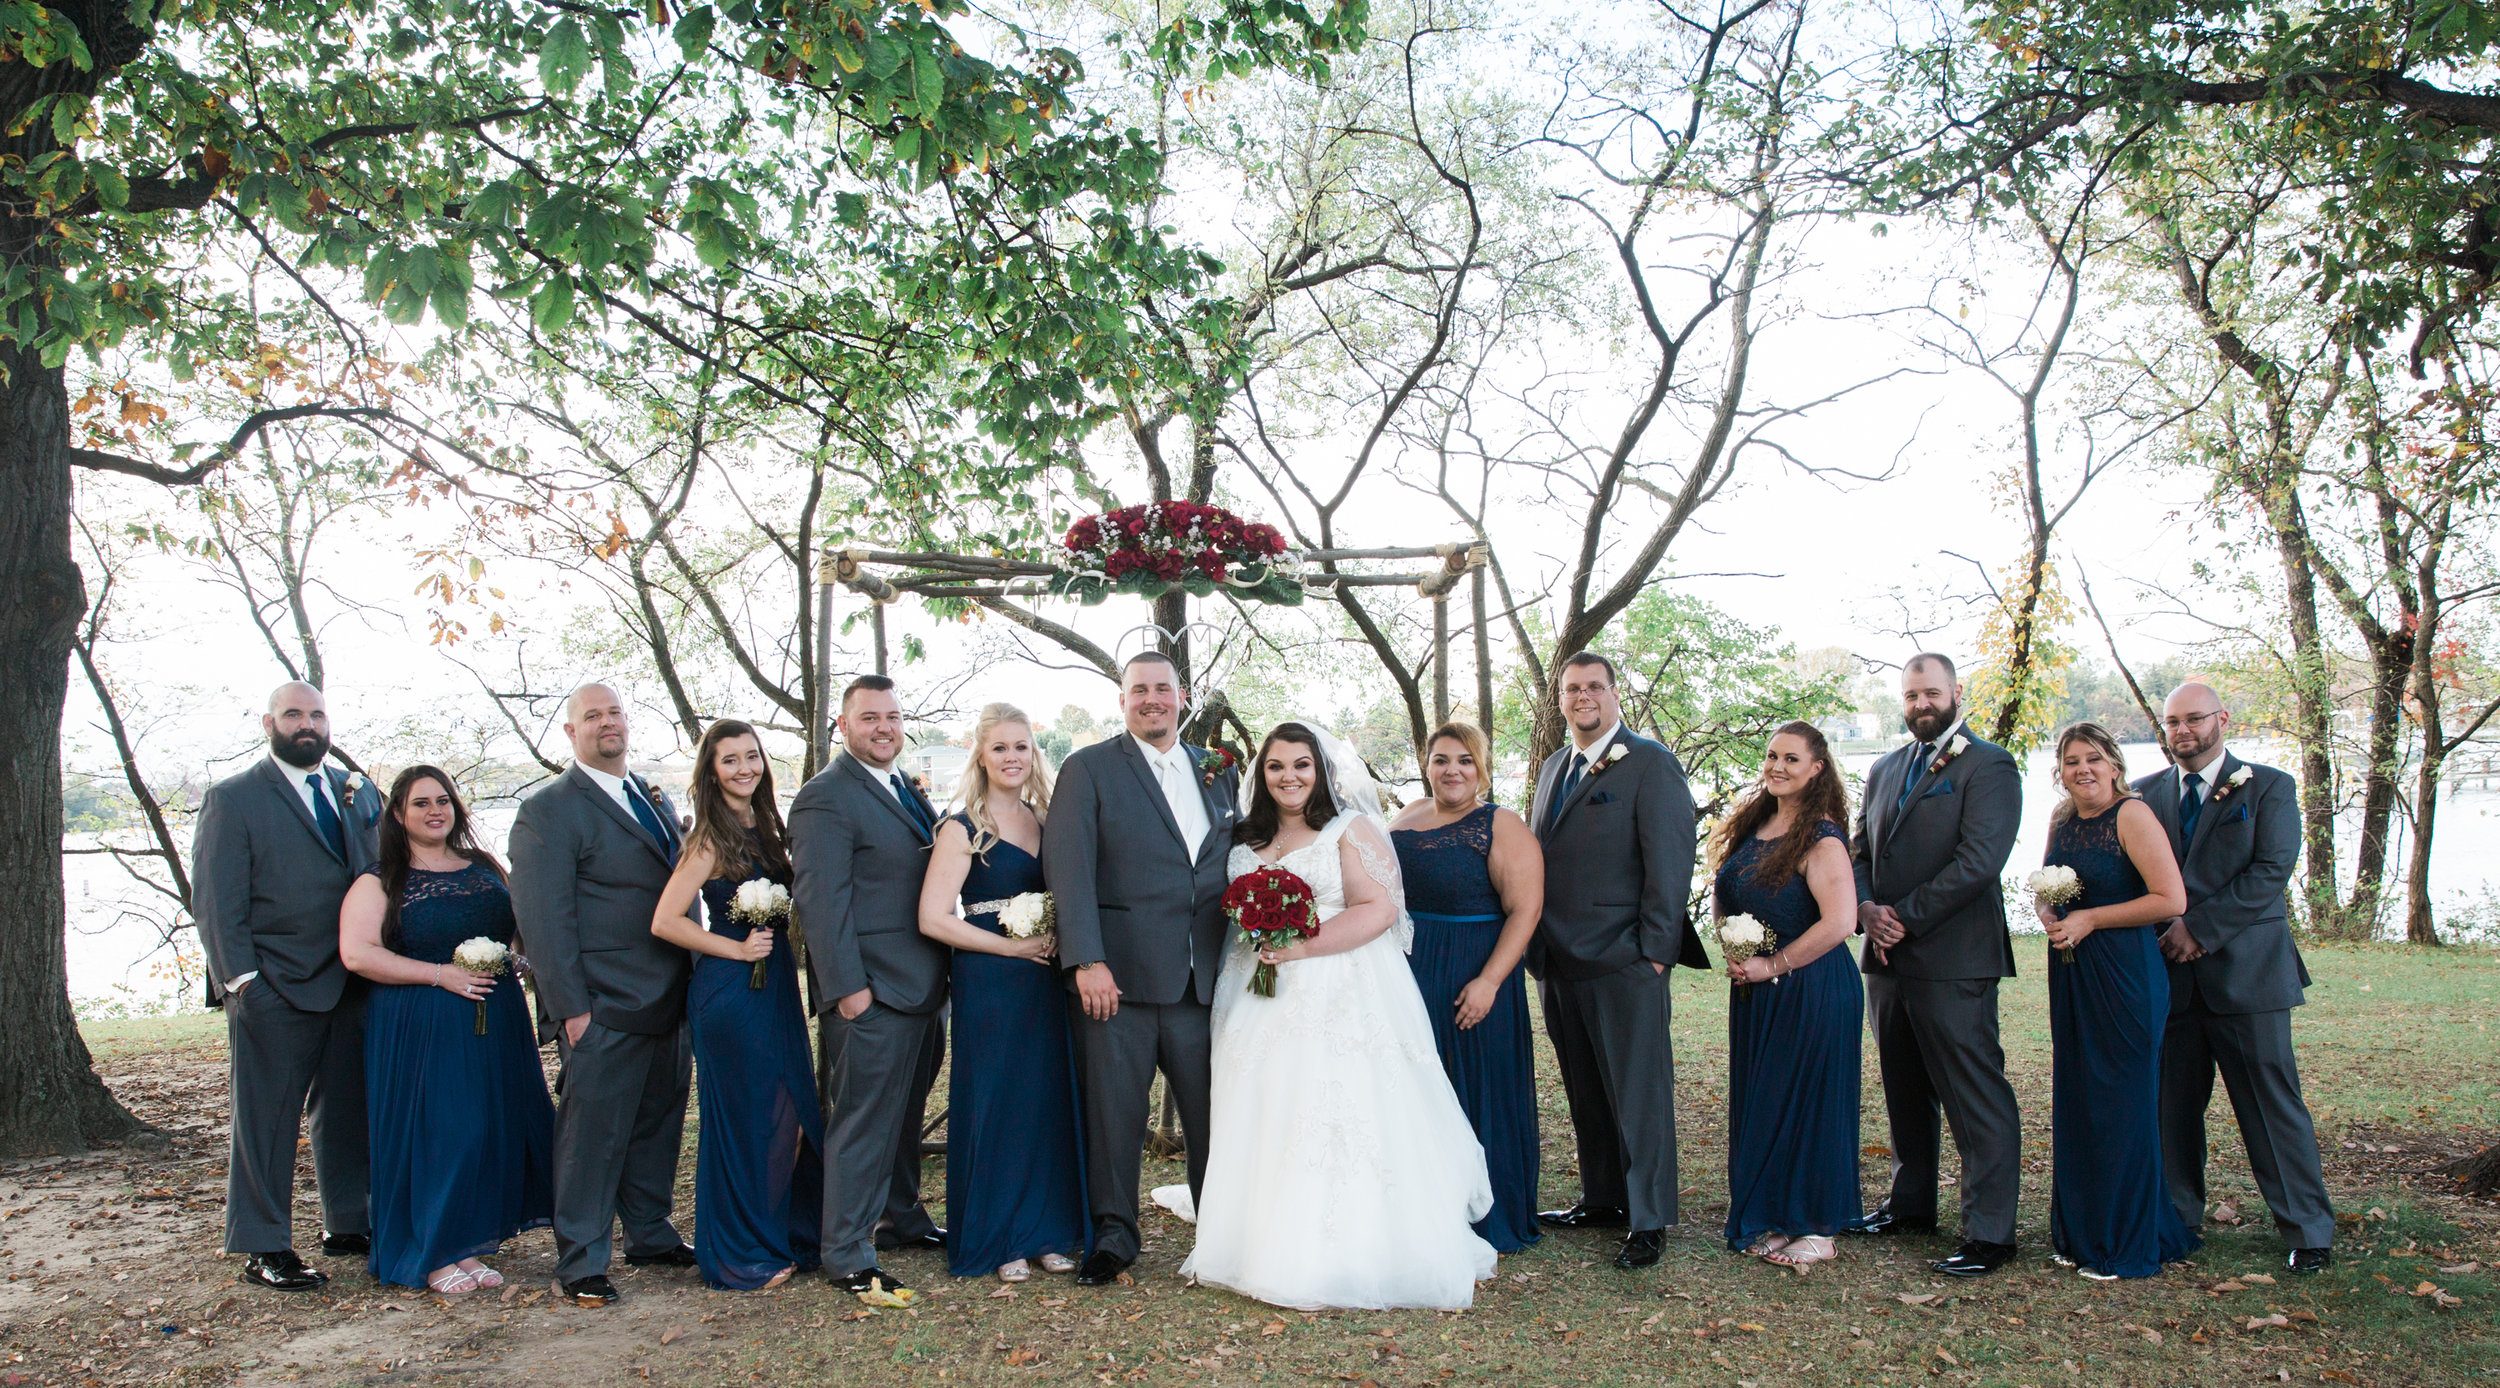 Sparrows Point Country Club Maryland photography Wedding Photographers Megapixels Media-57.jpg